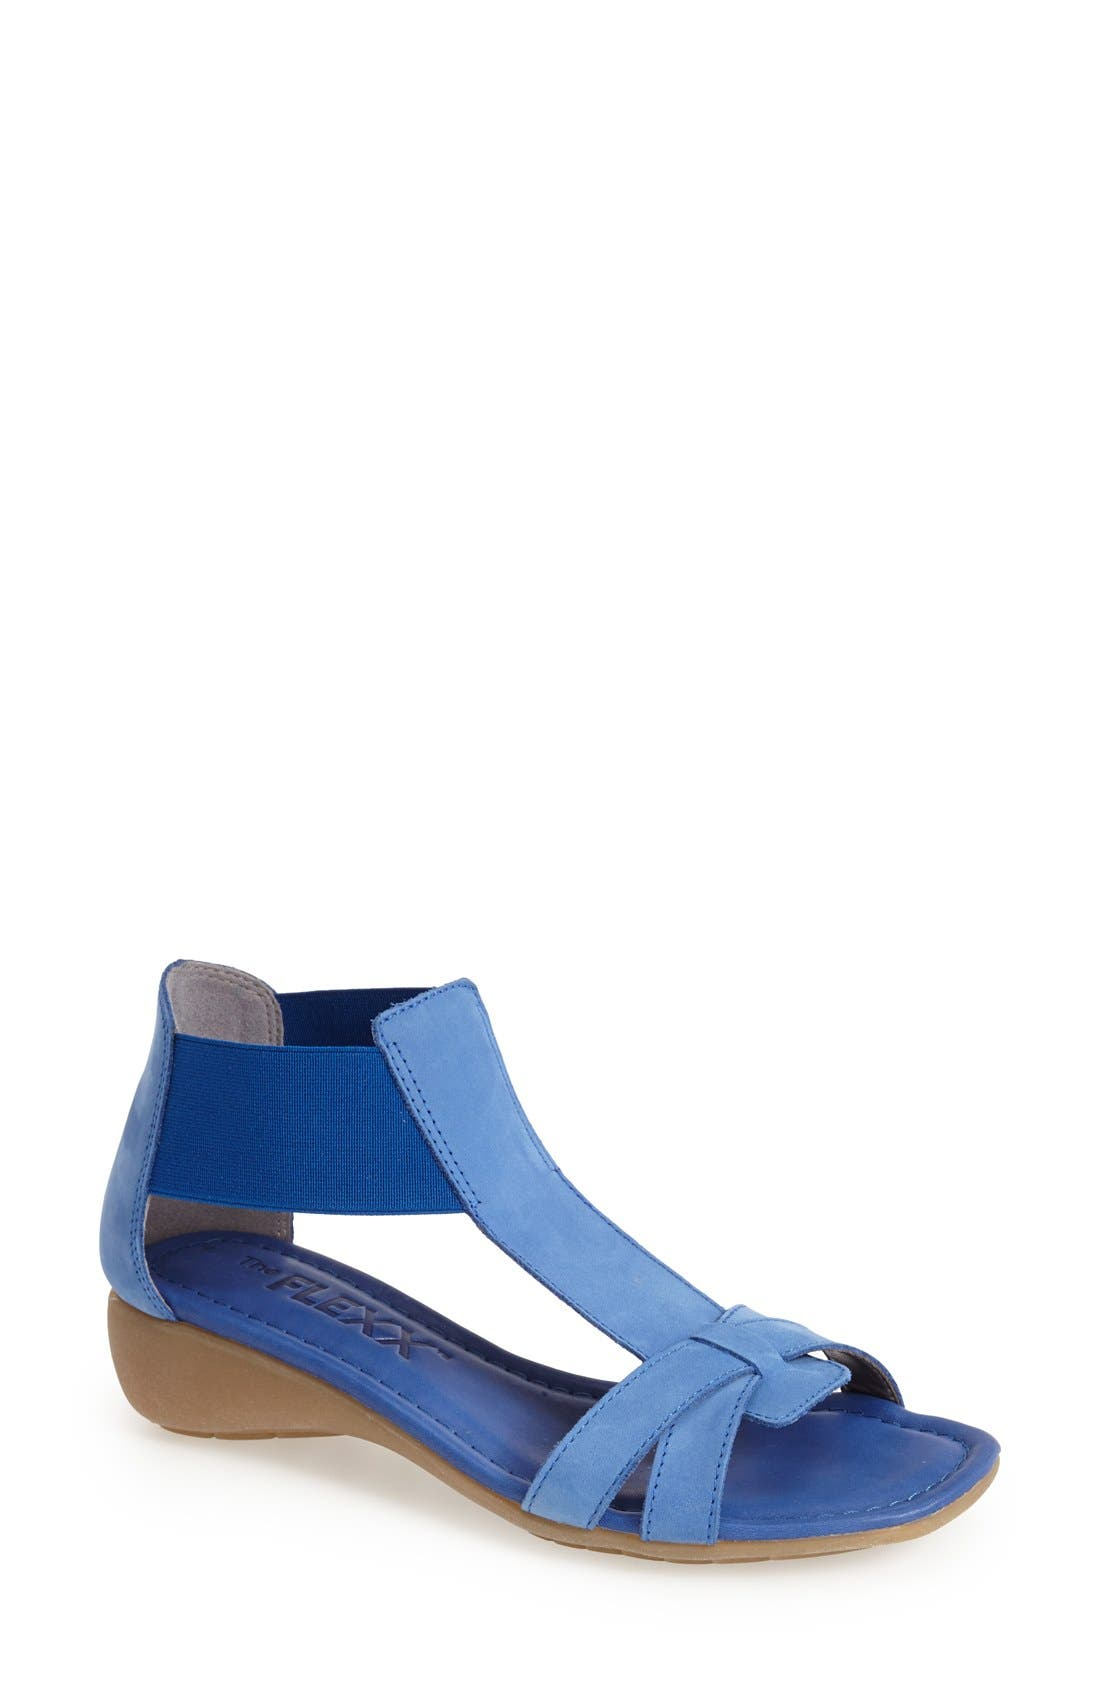 THE FLEXX Band Together Sandal